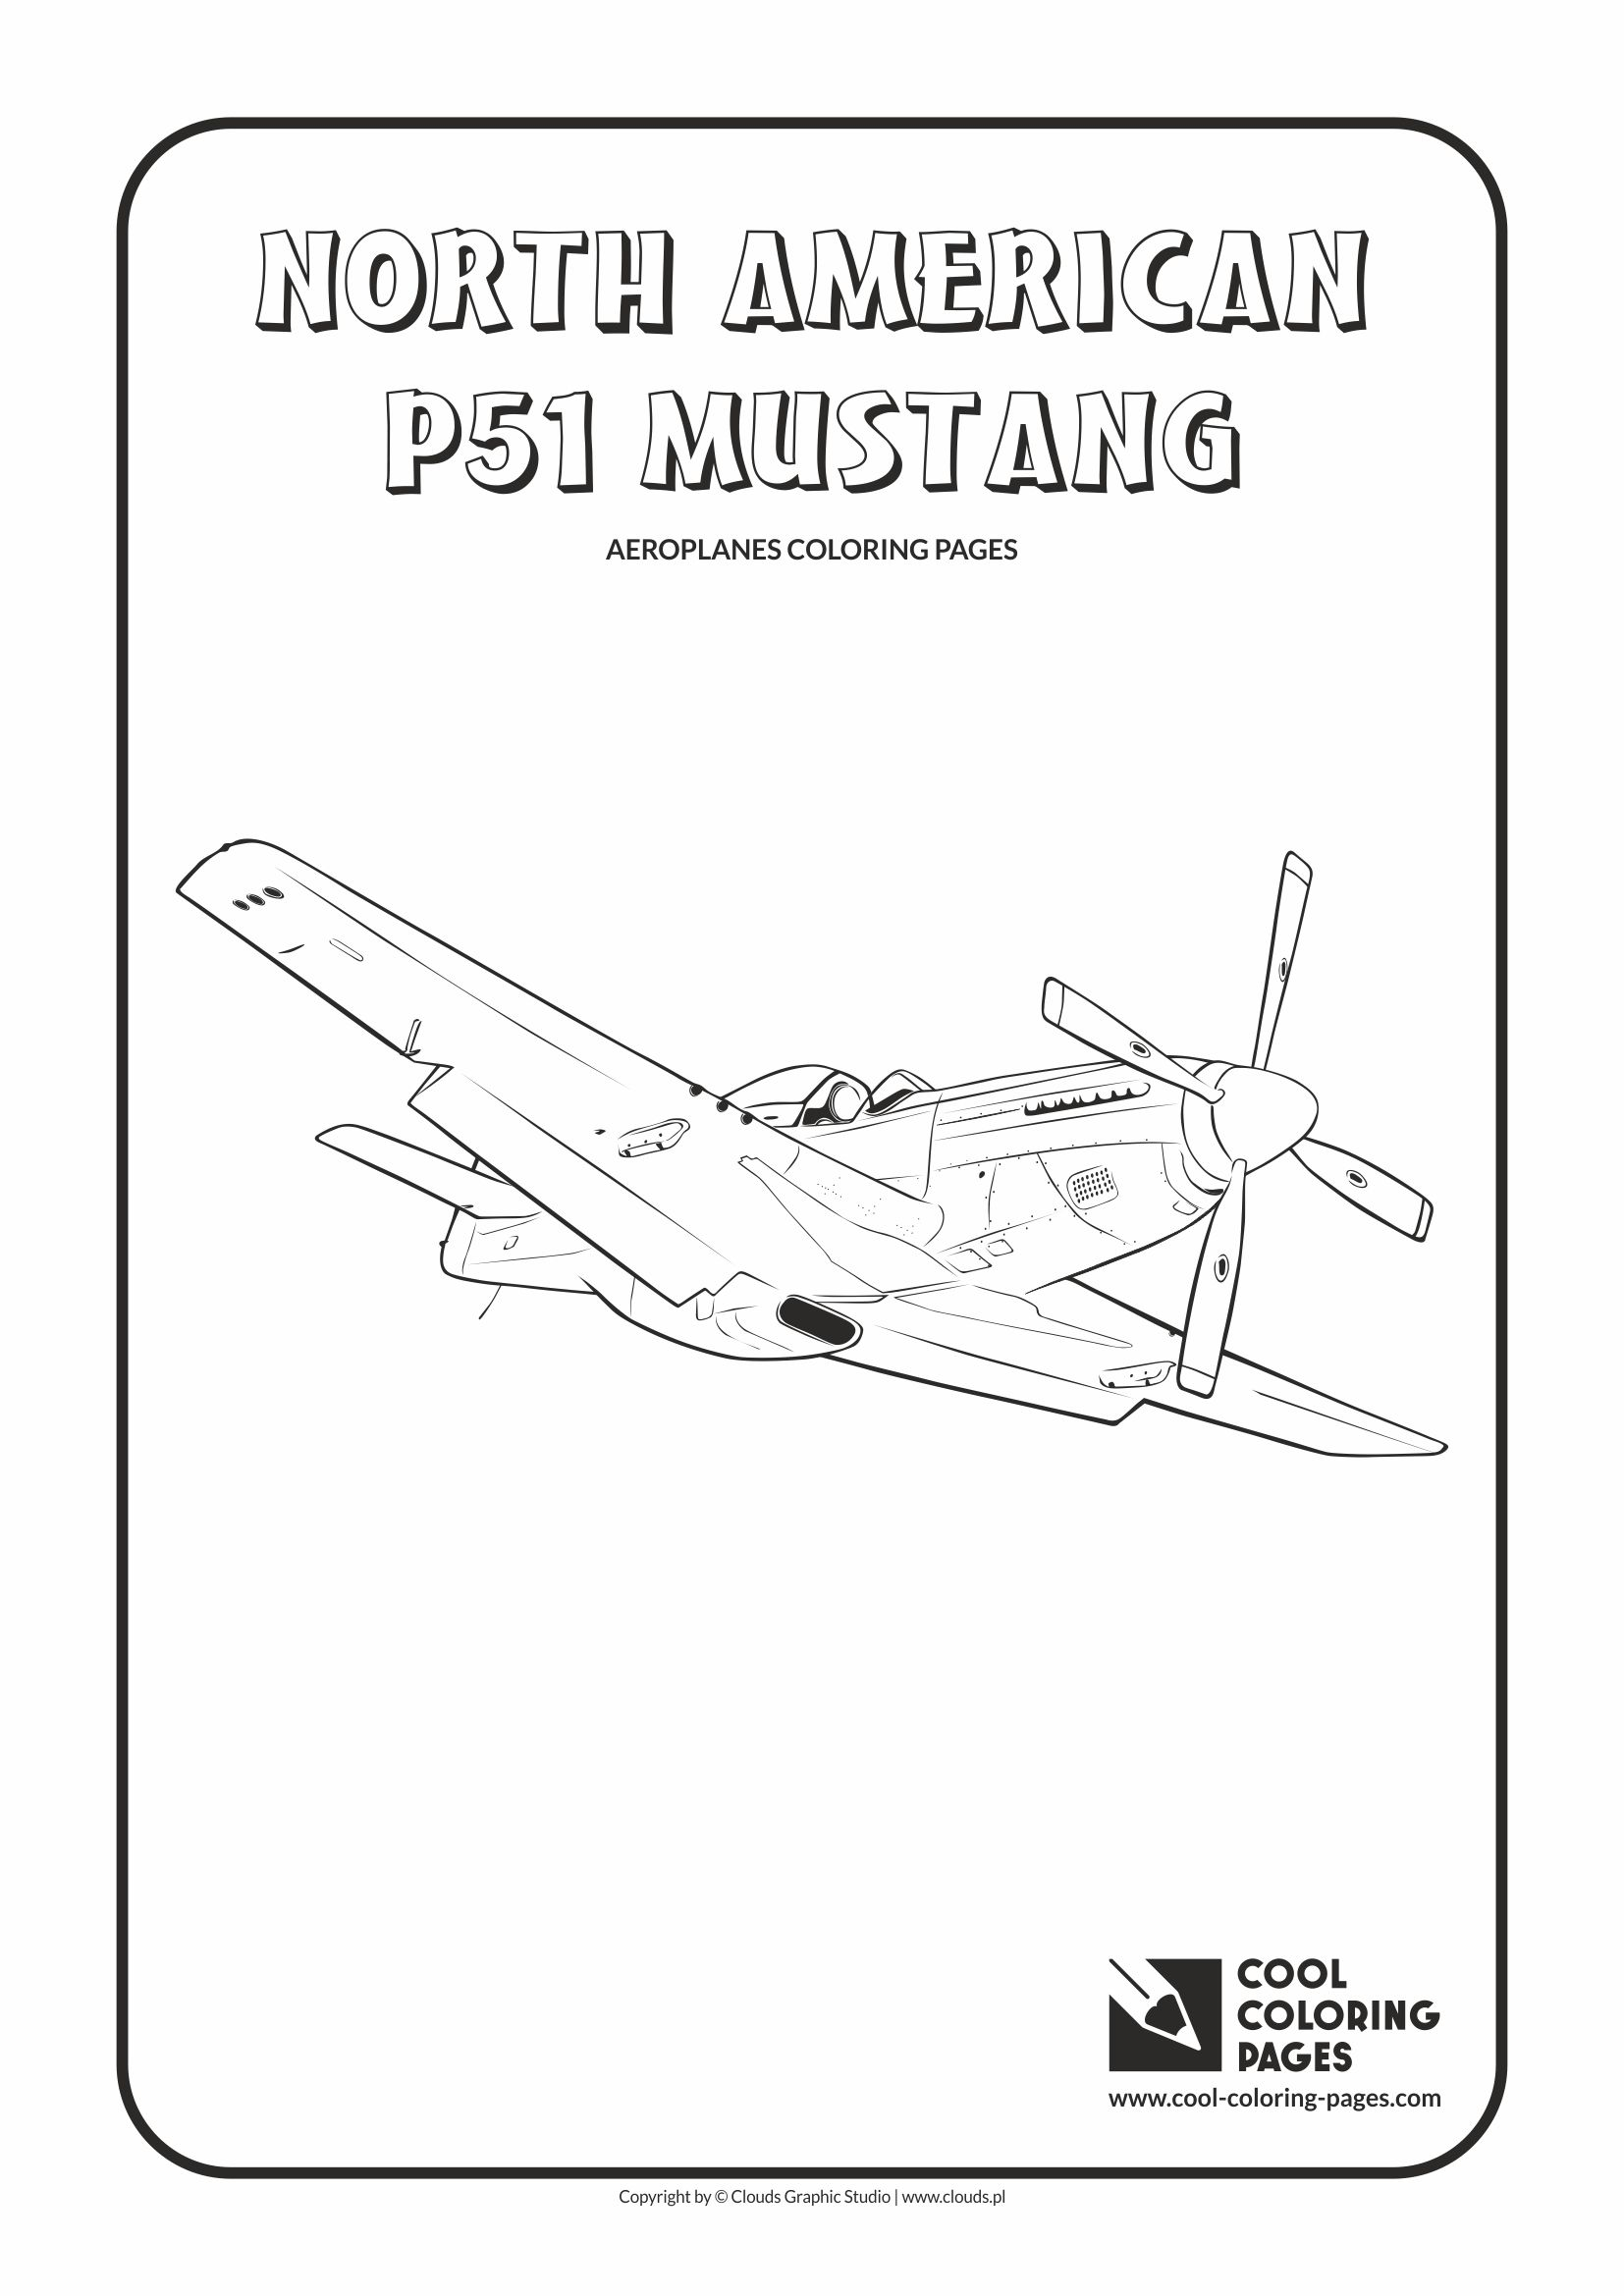 Cool Coloring Pages North American P 51 Mustang Coloring